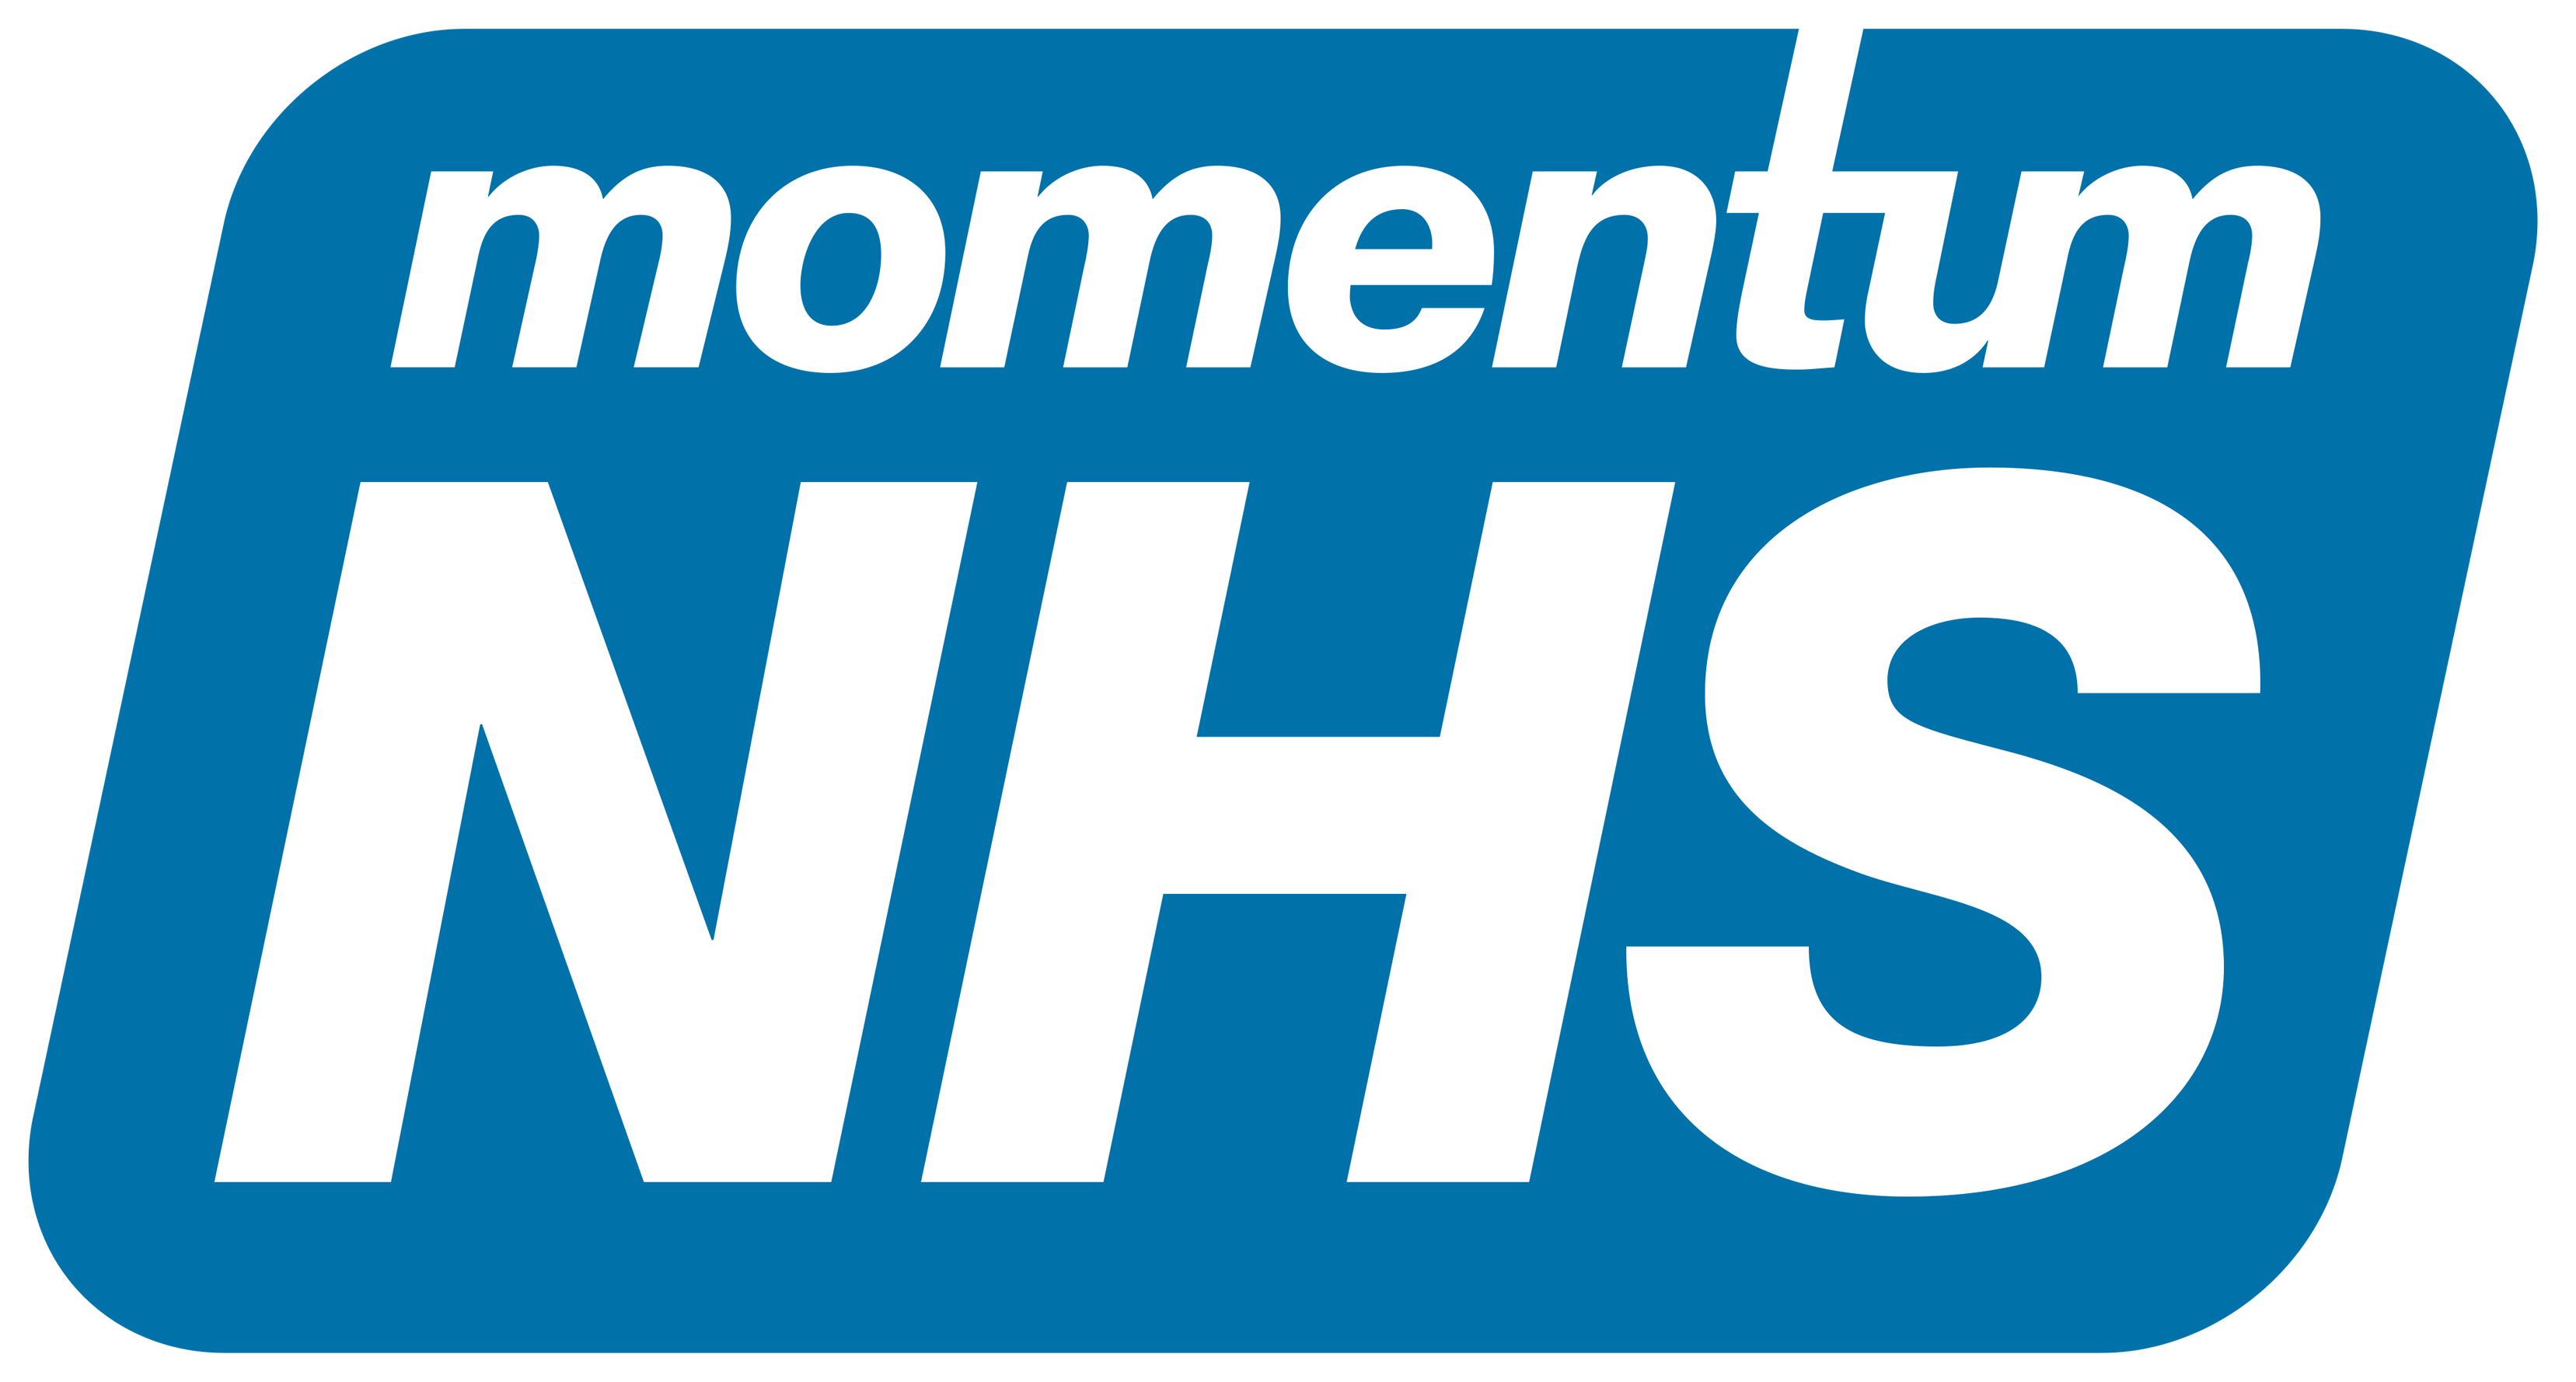 Momentum_NHS_trimmed.png